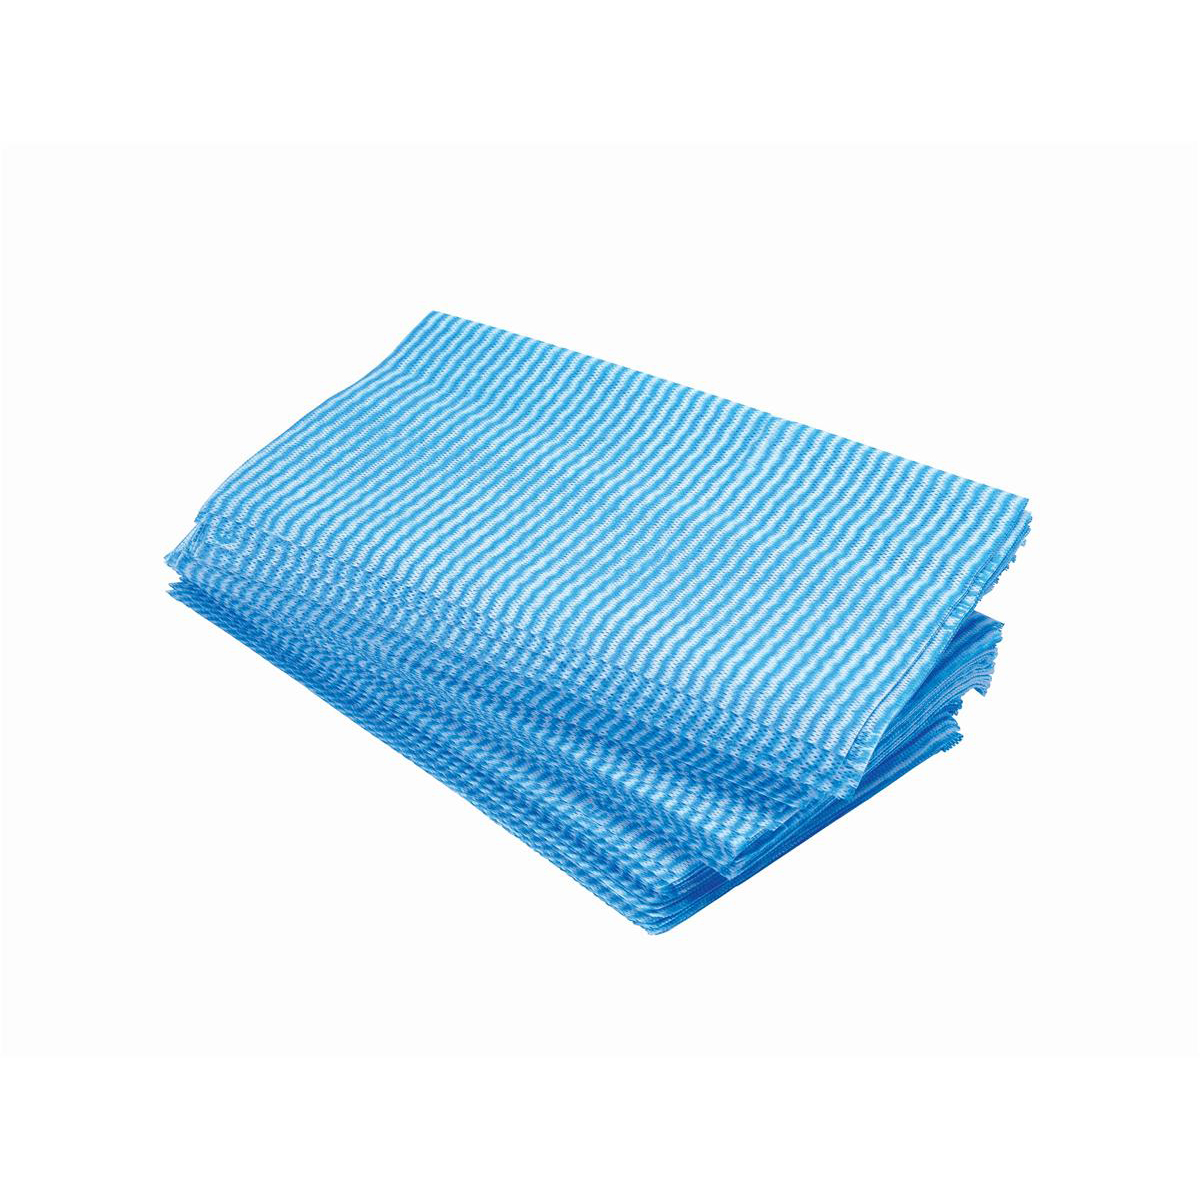 5 Star Facilities Large All Purpose cloths 610x360mm Blue Pack 50